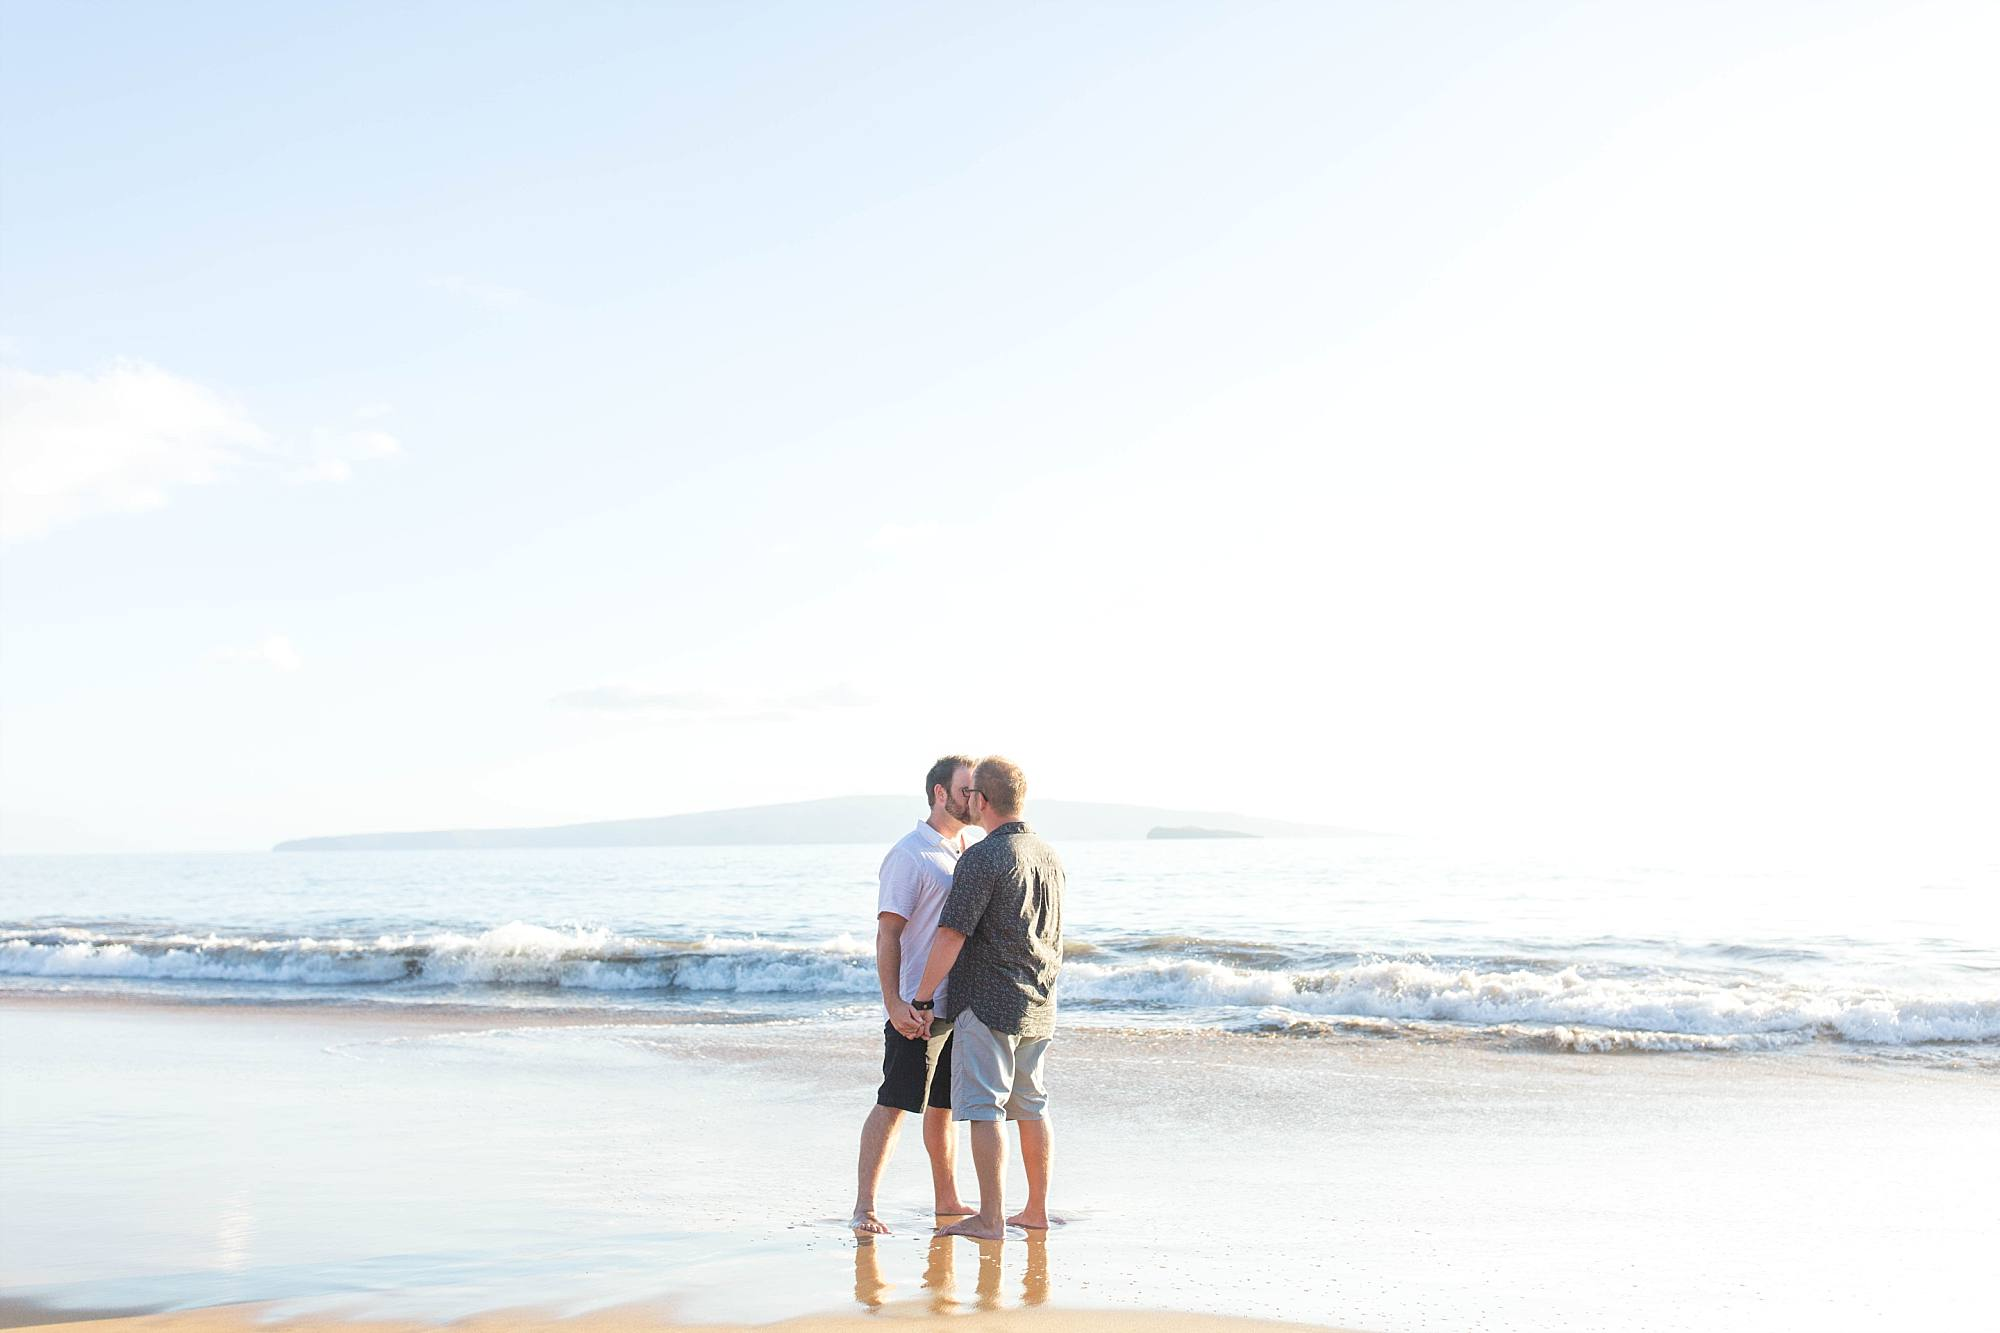 the newly engaged couple is sharing a sweet kiss at the waters edge, waves rolling in